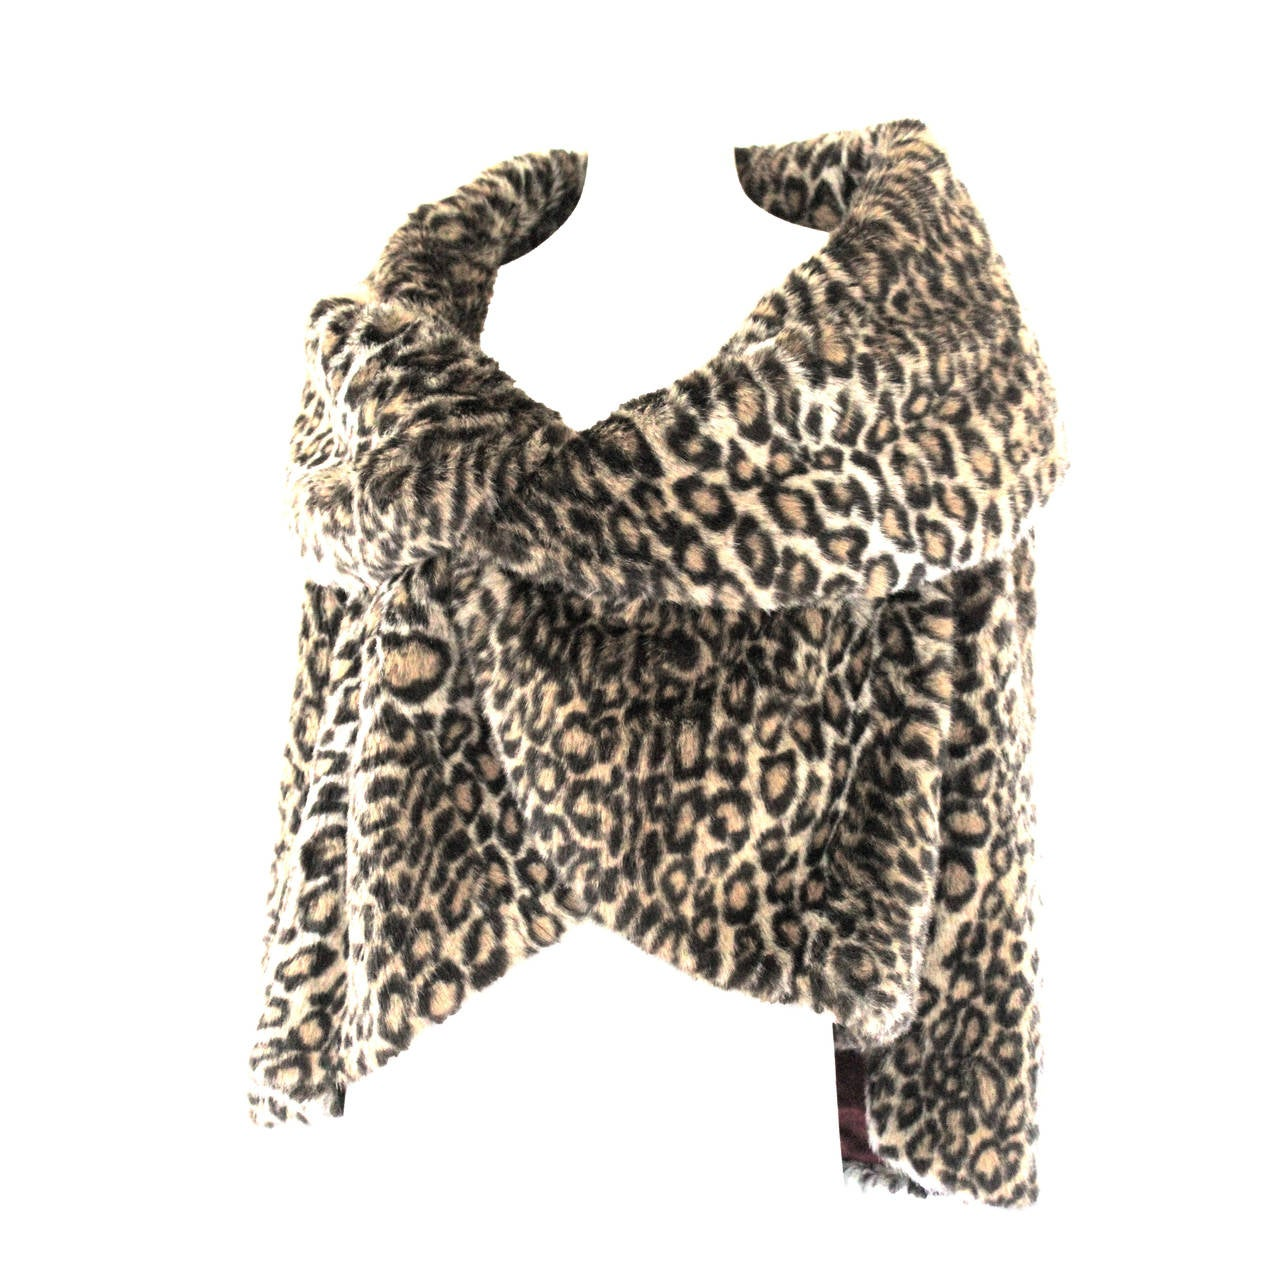 Junya Watanabe for CDG AD 2000 Faux Fur Leopard Cape For Sale